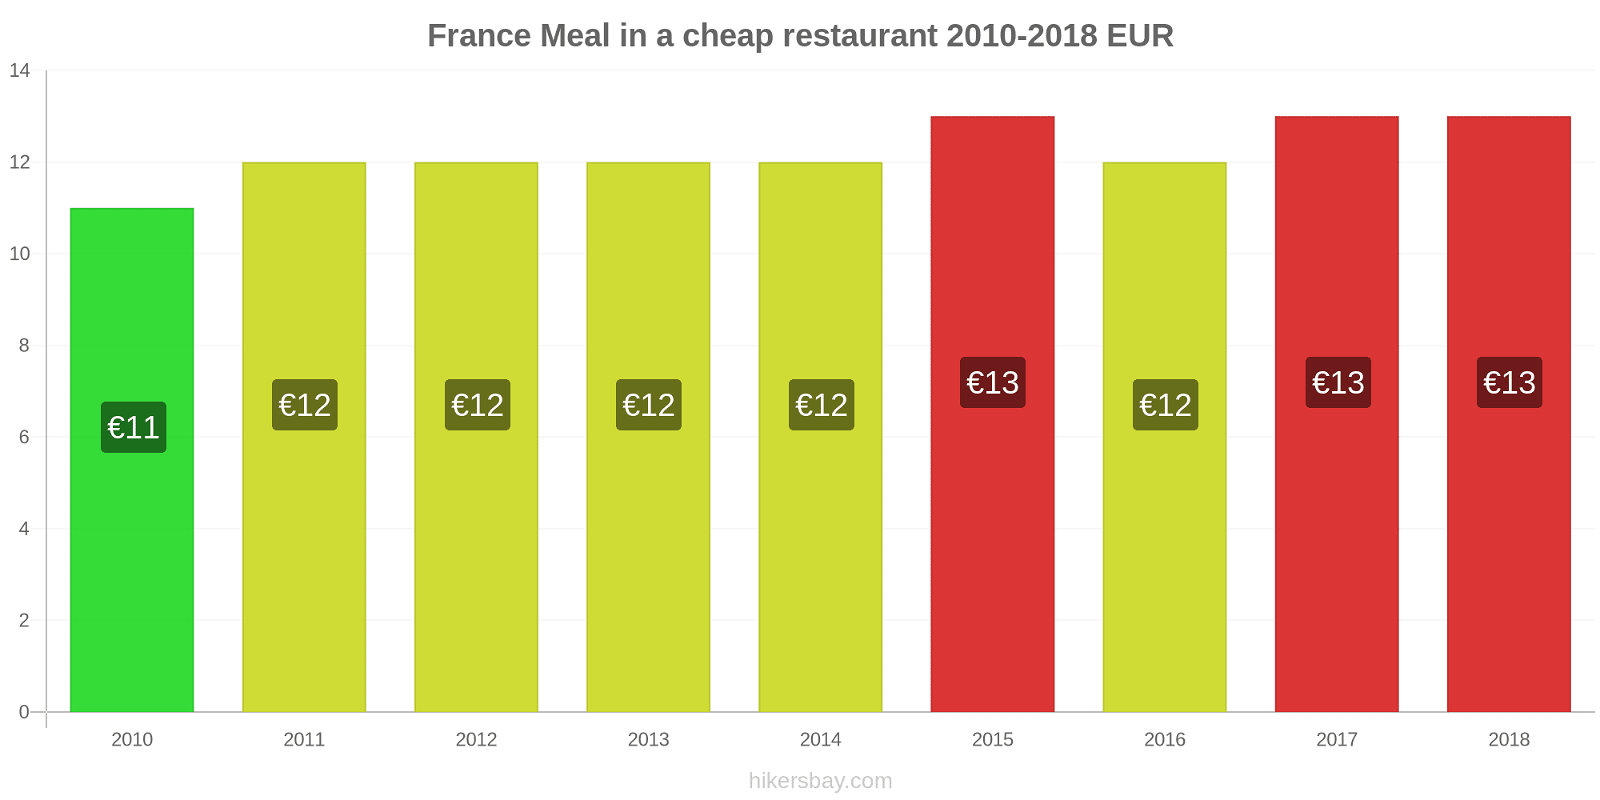 France price changes Meal in a cheap restaurant hikersbay.com